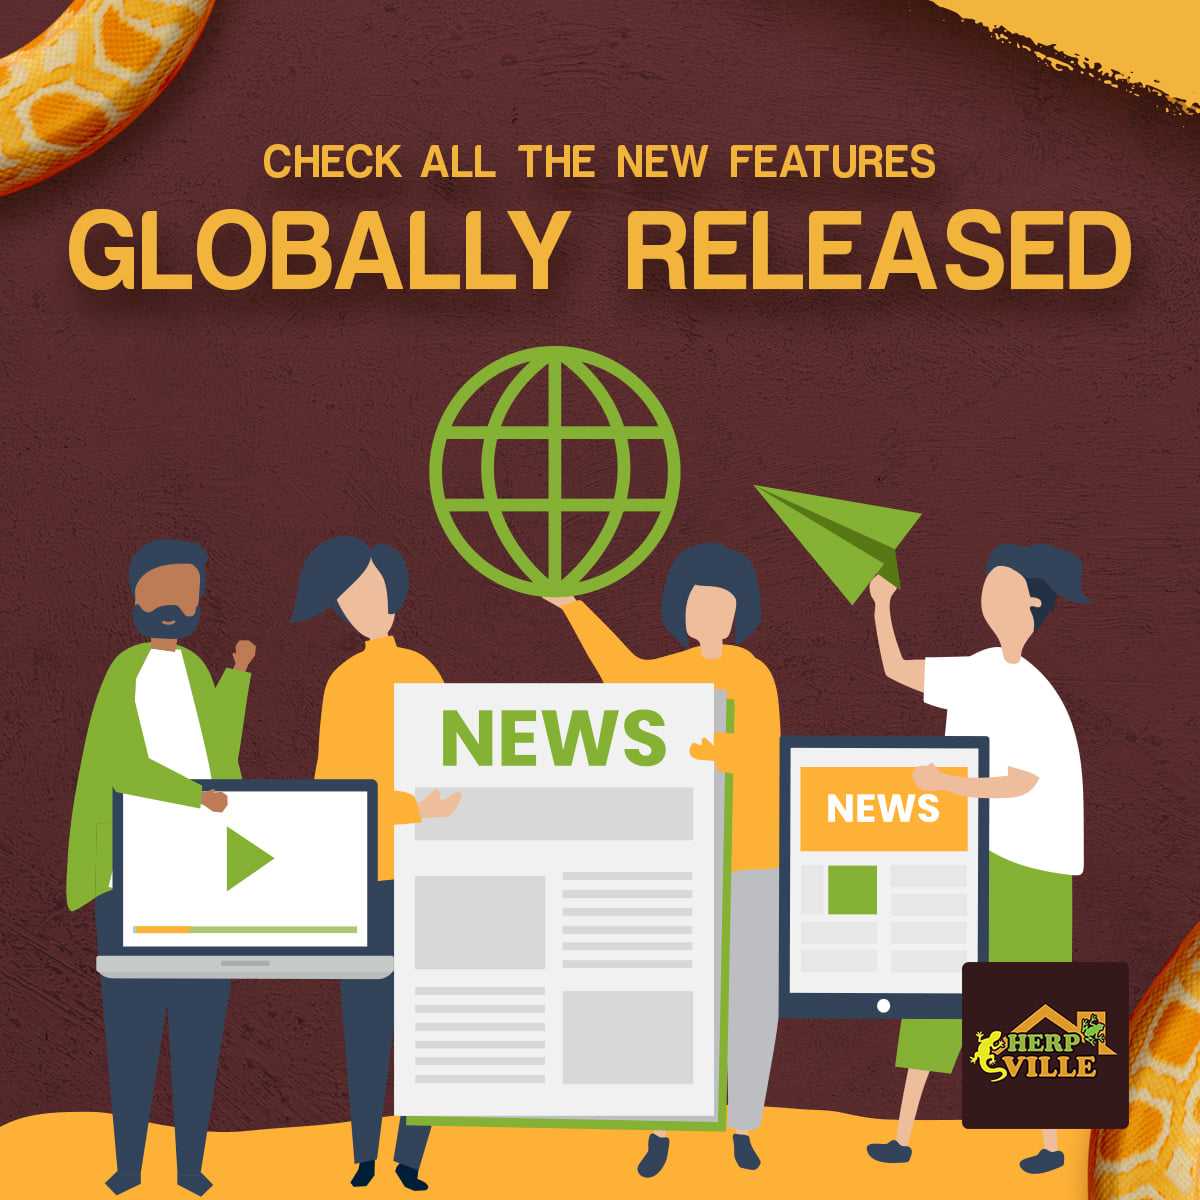 Check all the new features globally released